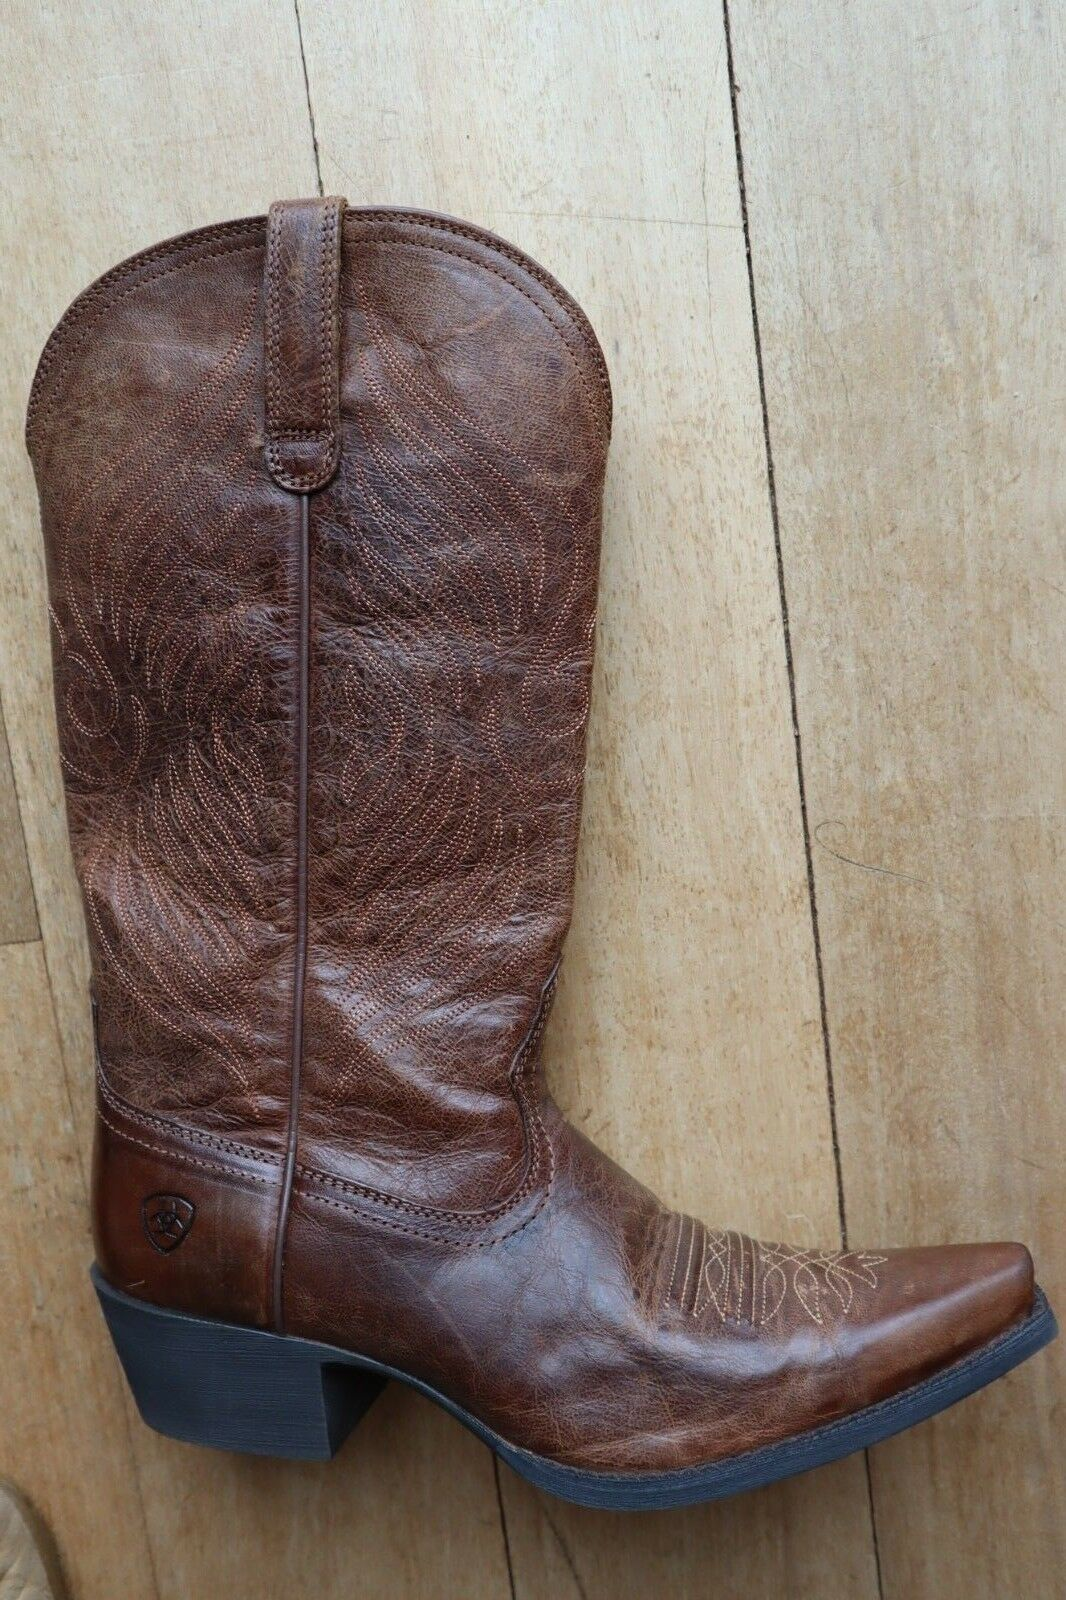 Dark Brown Leather Western Stitched Design Pull On Pointy Toe Boots 9 B